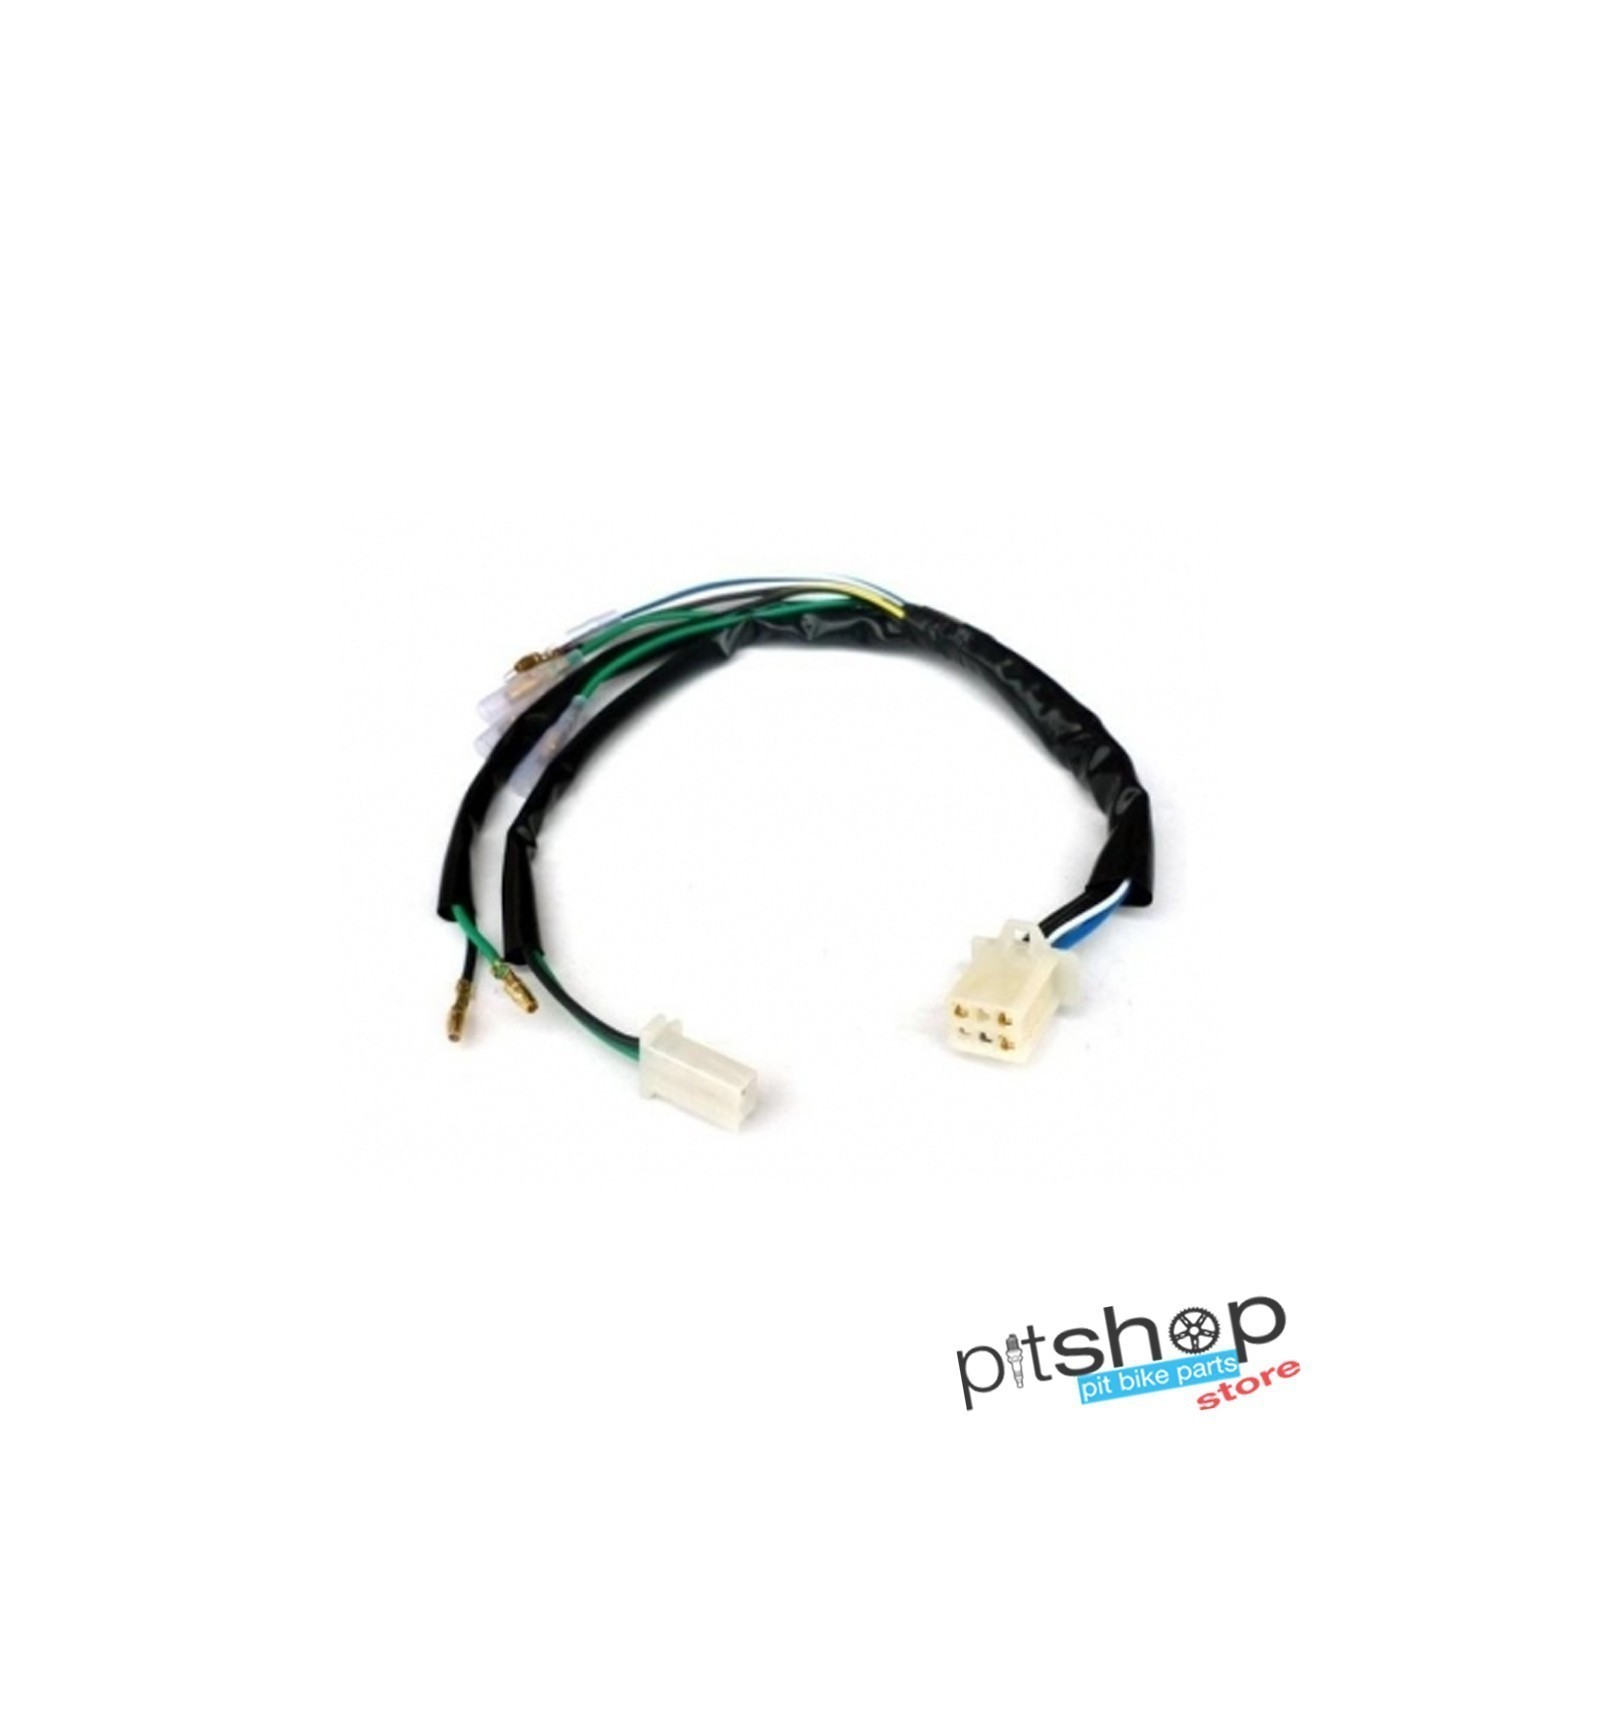 CDI Pit Bike 5 Pin Motor Wiring Harness From 125cc